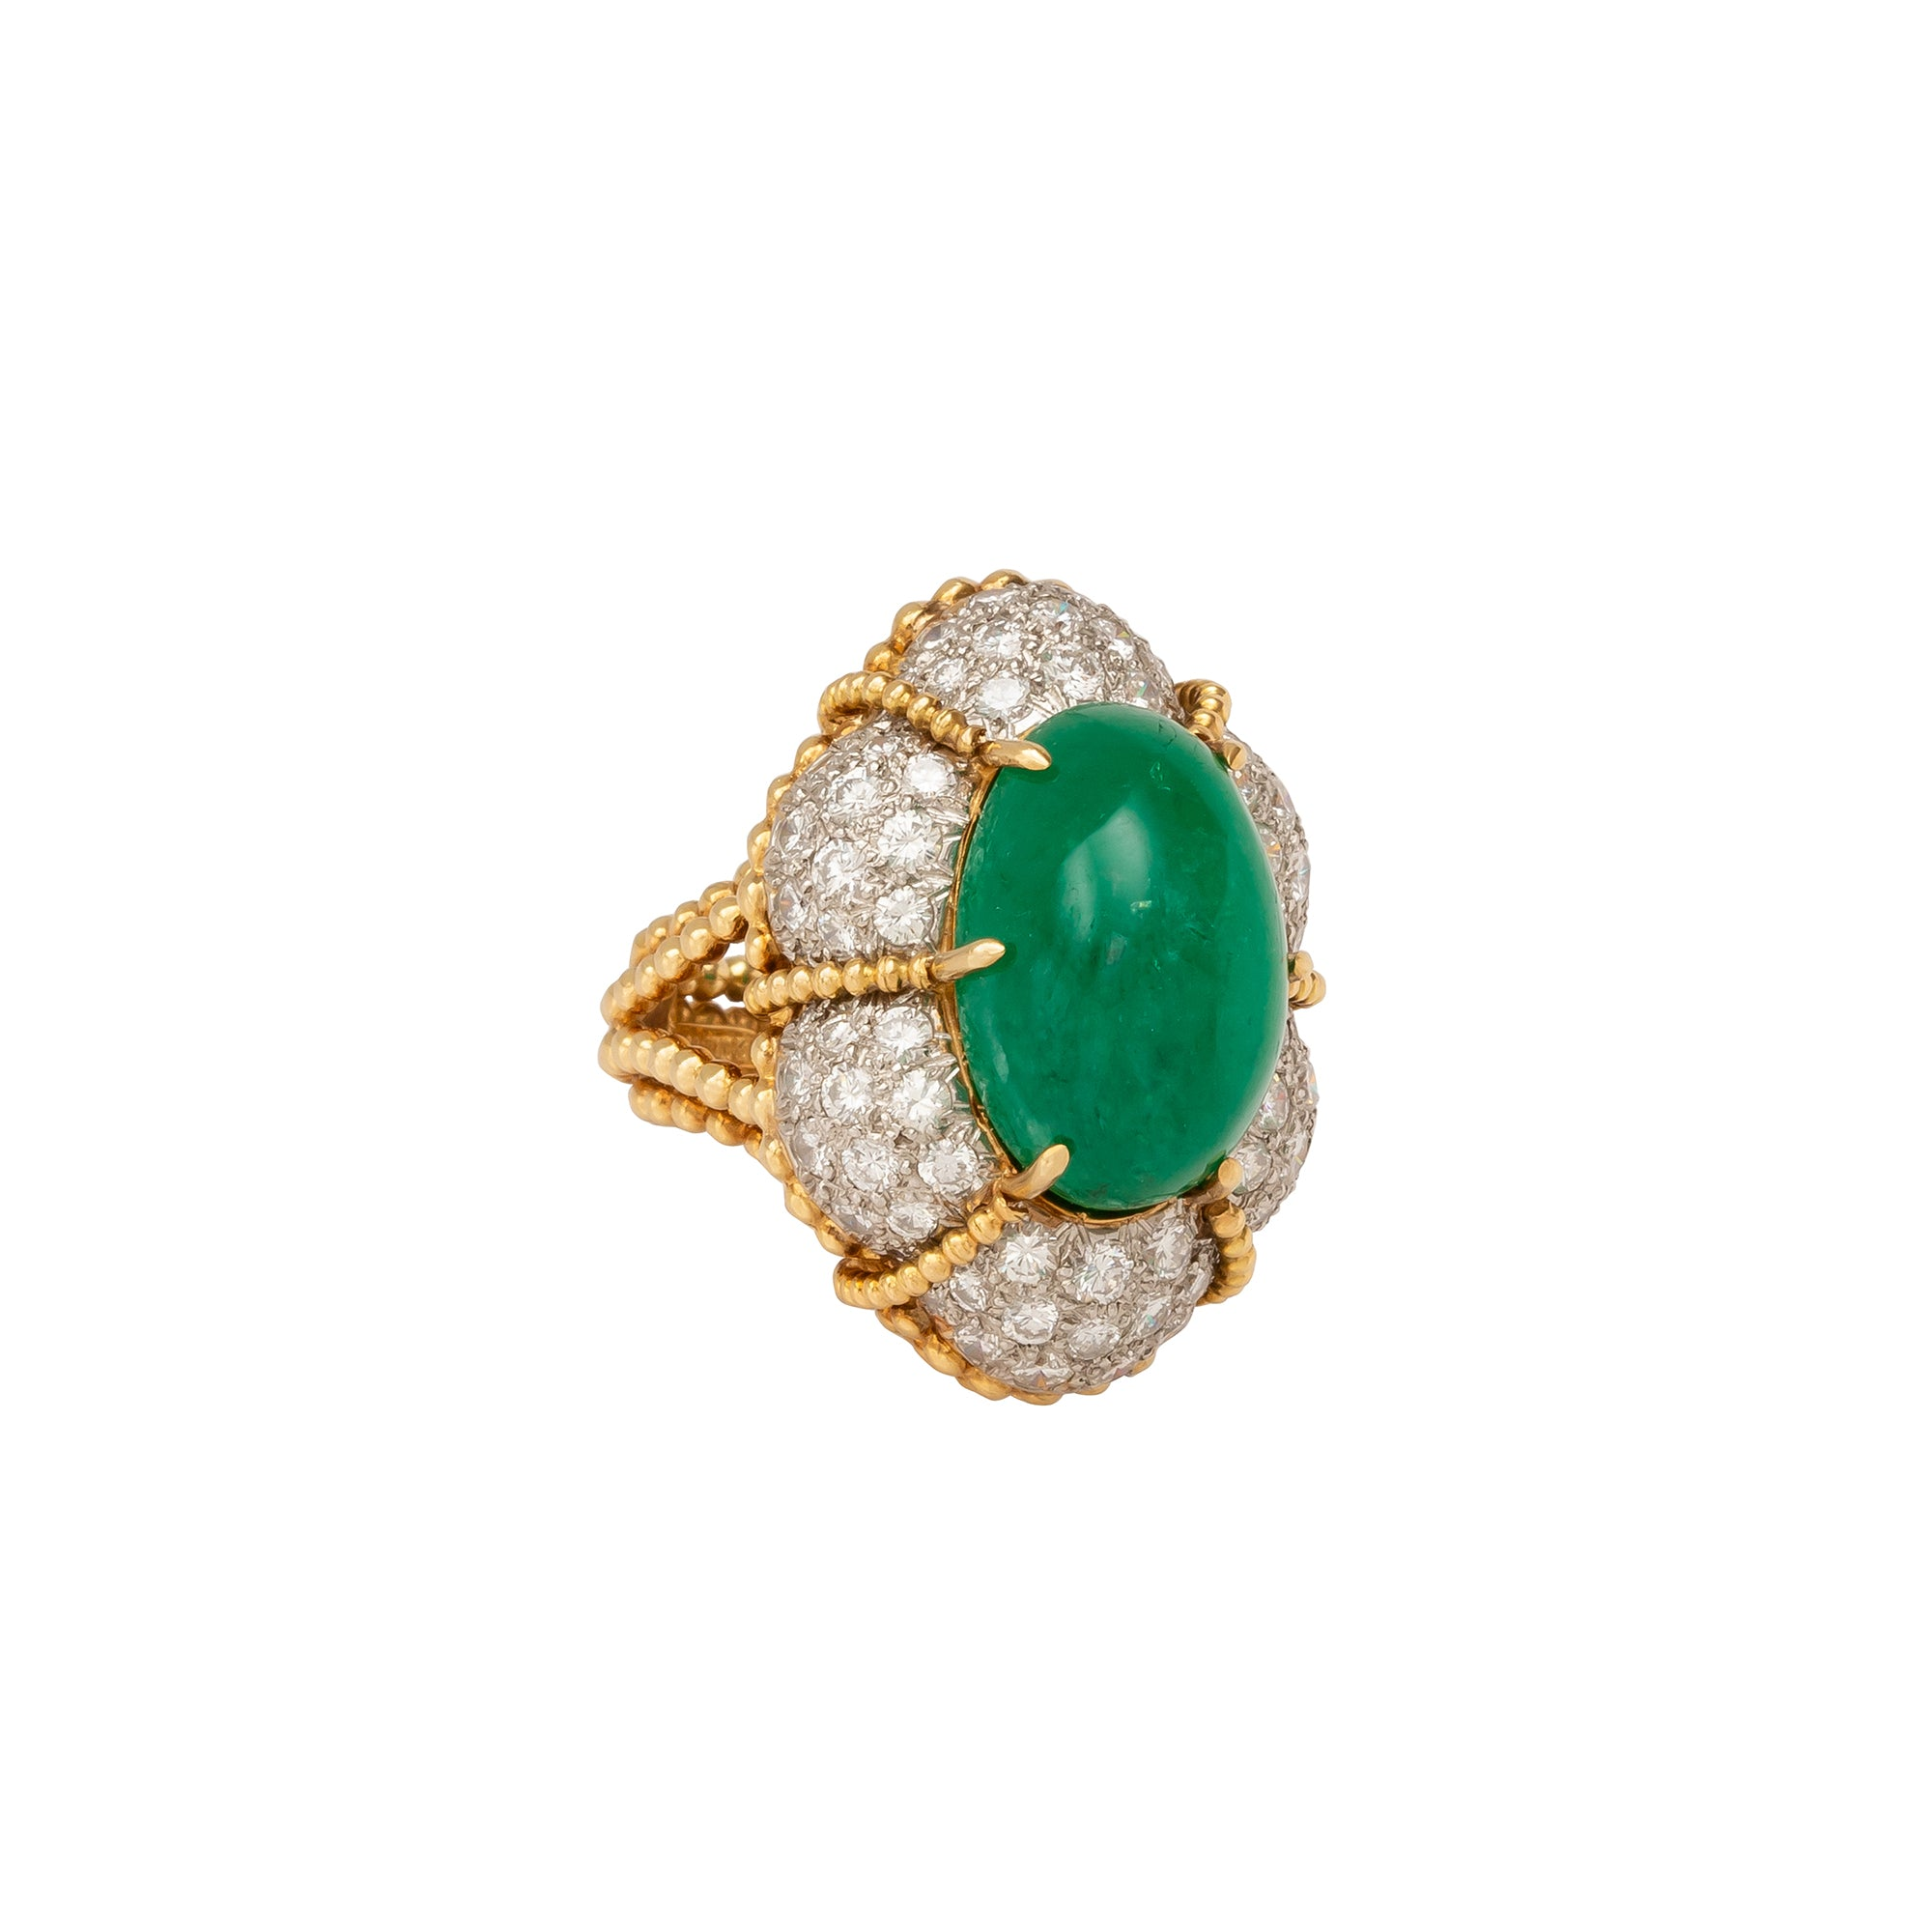 Antique & Vintage Jewelry Emerald Dome Ring - Rings - Broken English Jewelry